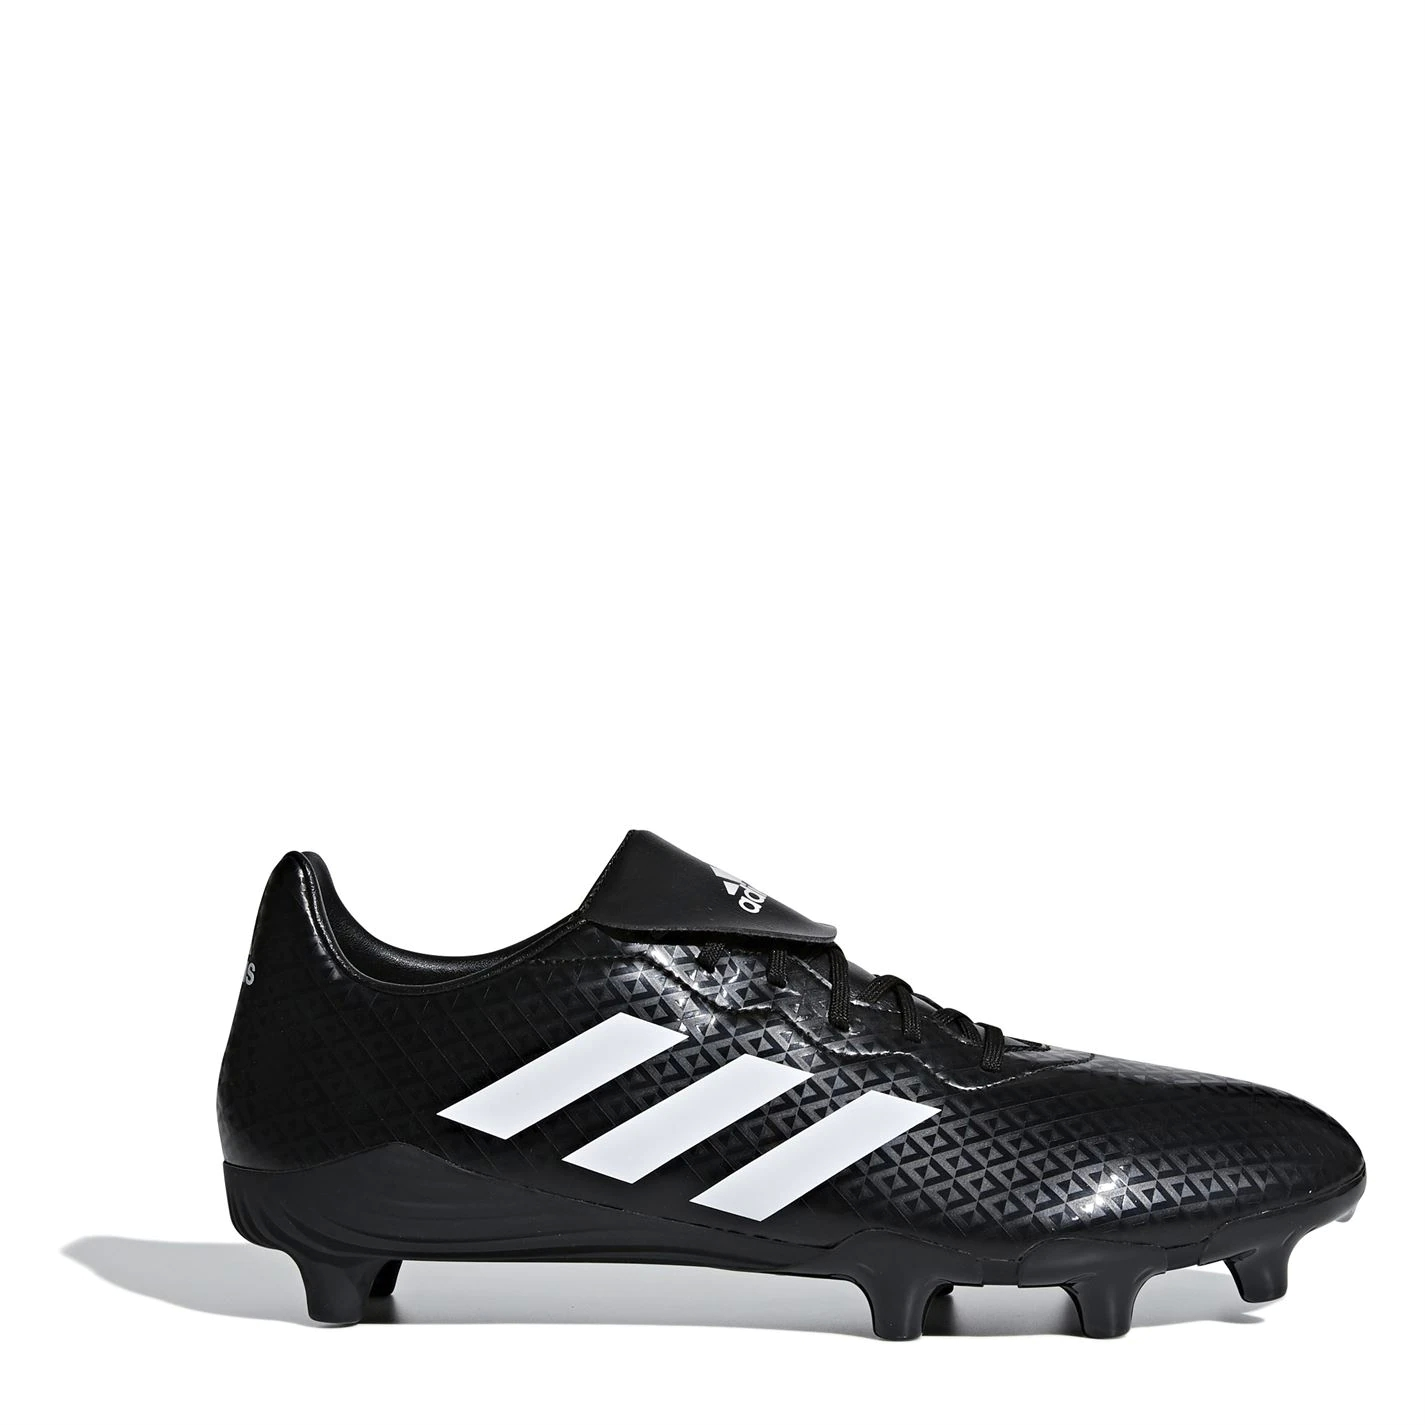 adidas Adidas Rumble Mens Rugby Boots Soft Ground Black/White